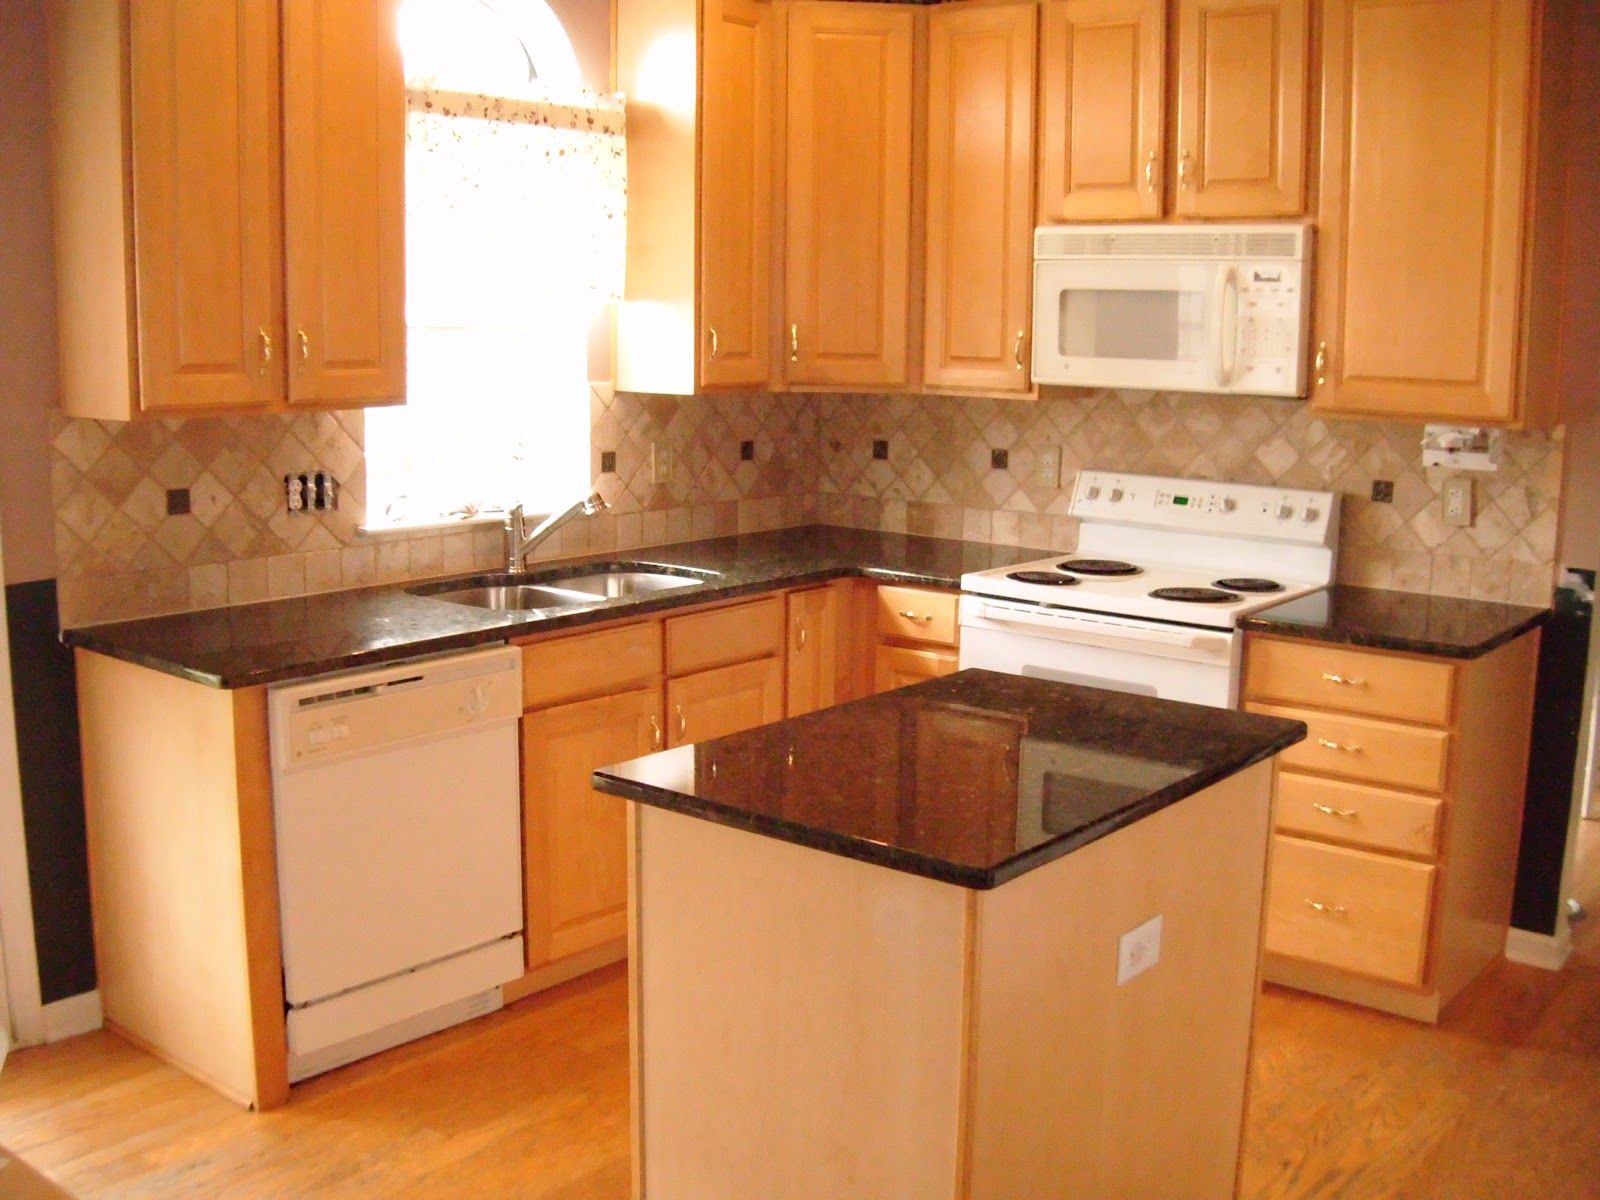 dark granite countertops with light cabinets light wood kitchen cabinets 17 Best images about Kitchen Ideas on Pinterest Whitewash cabinets Cabinets and Light wood